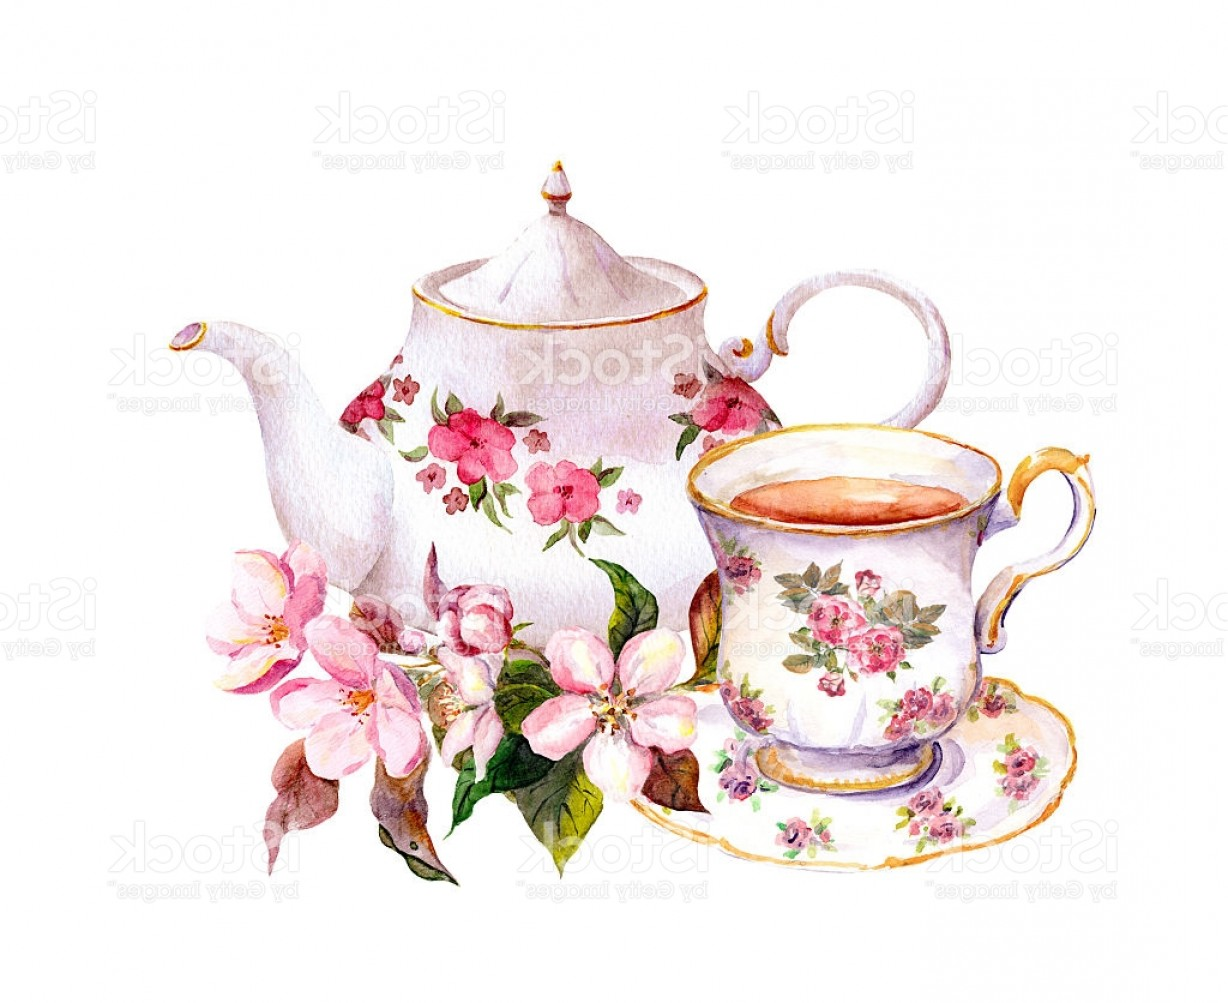 Vintage Tea Cup Vector: Tea Cup Teapot With Flowers Vintage Watercolor Design Gm